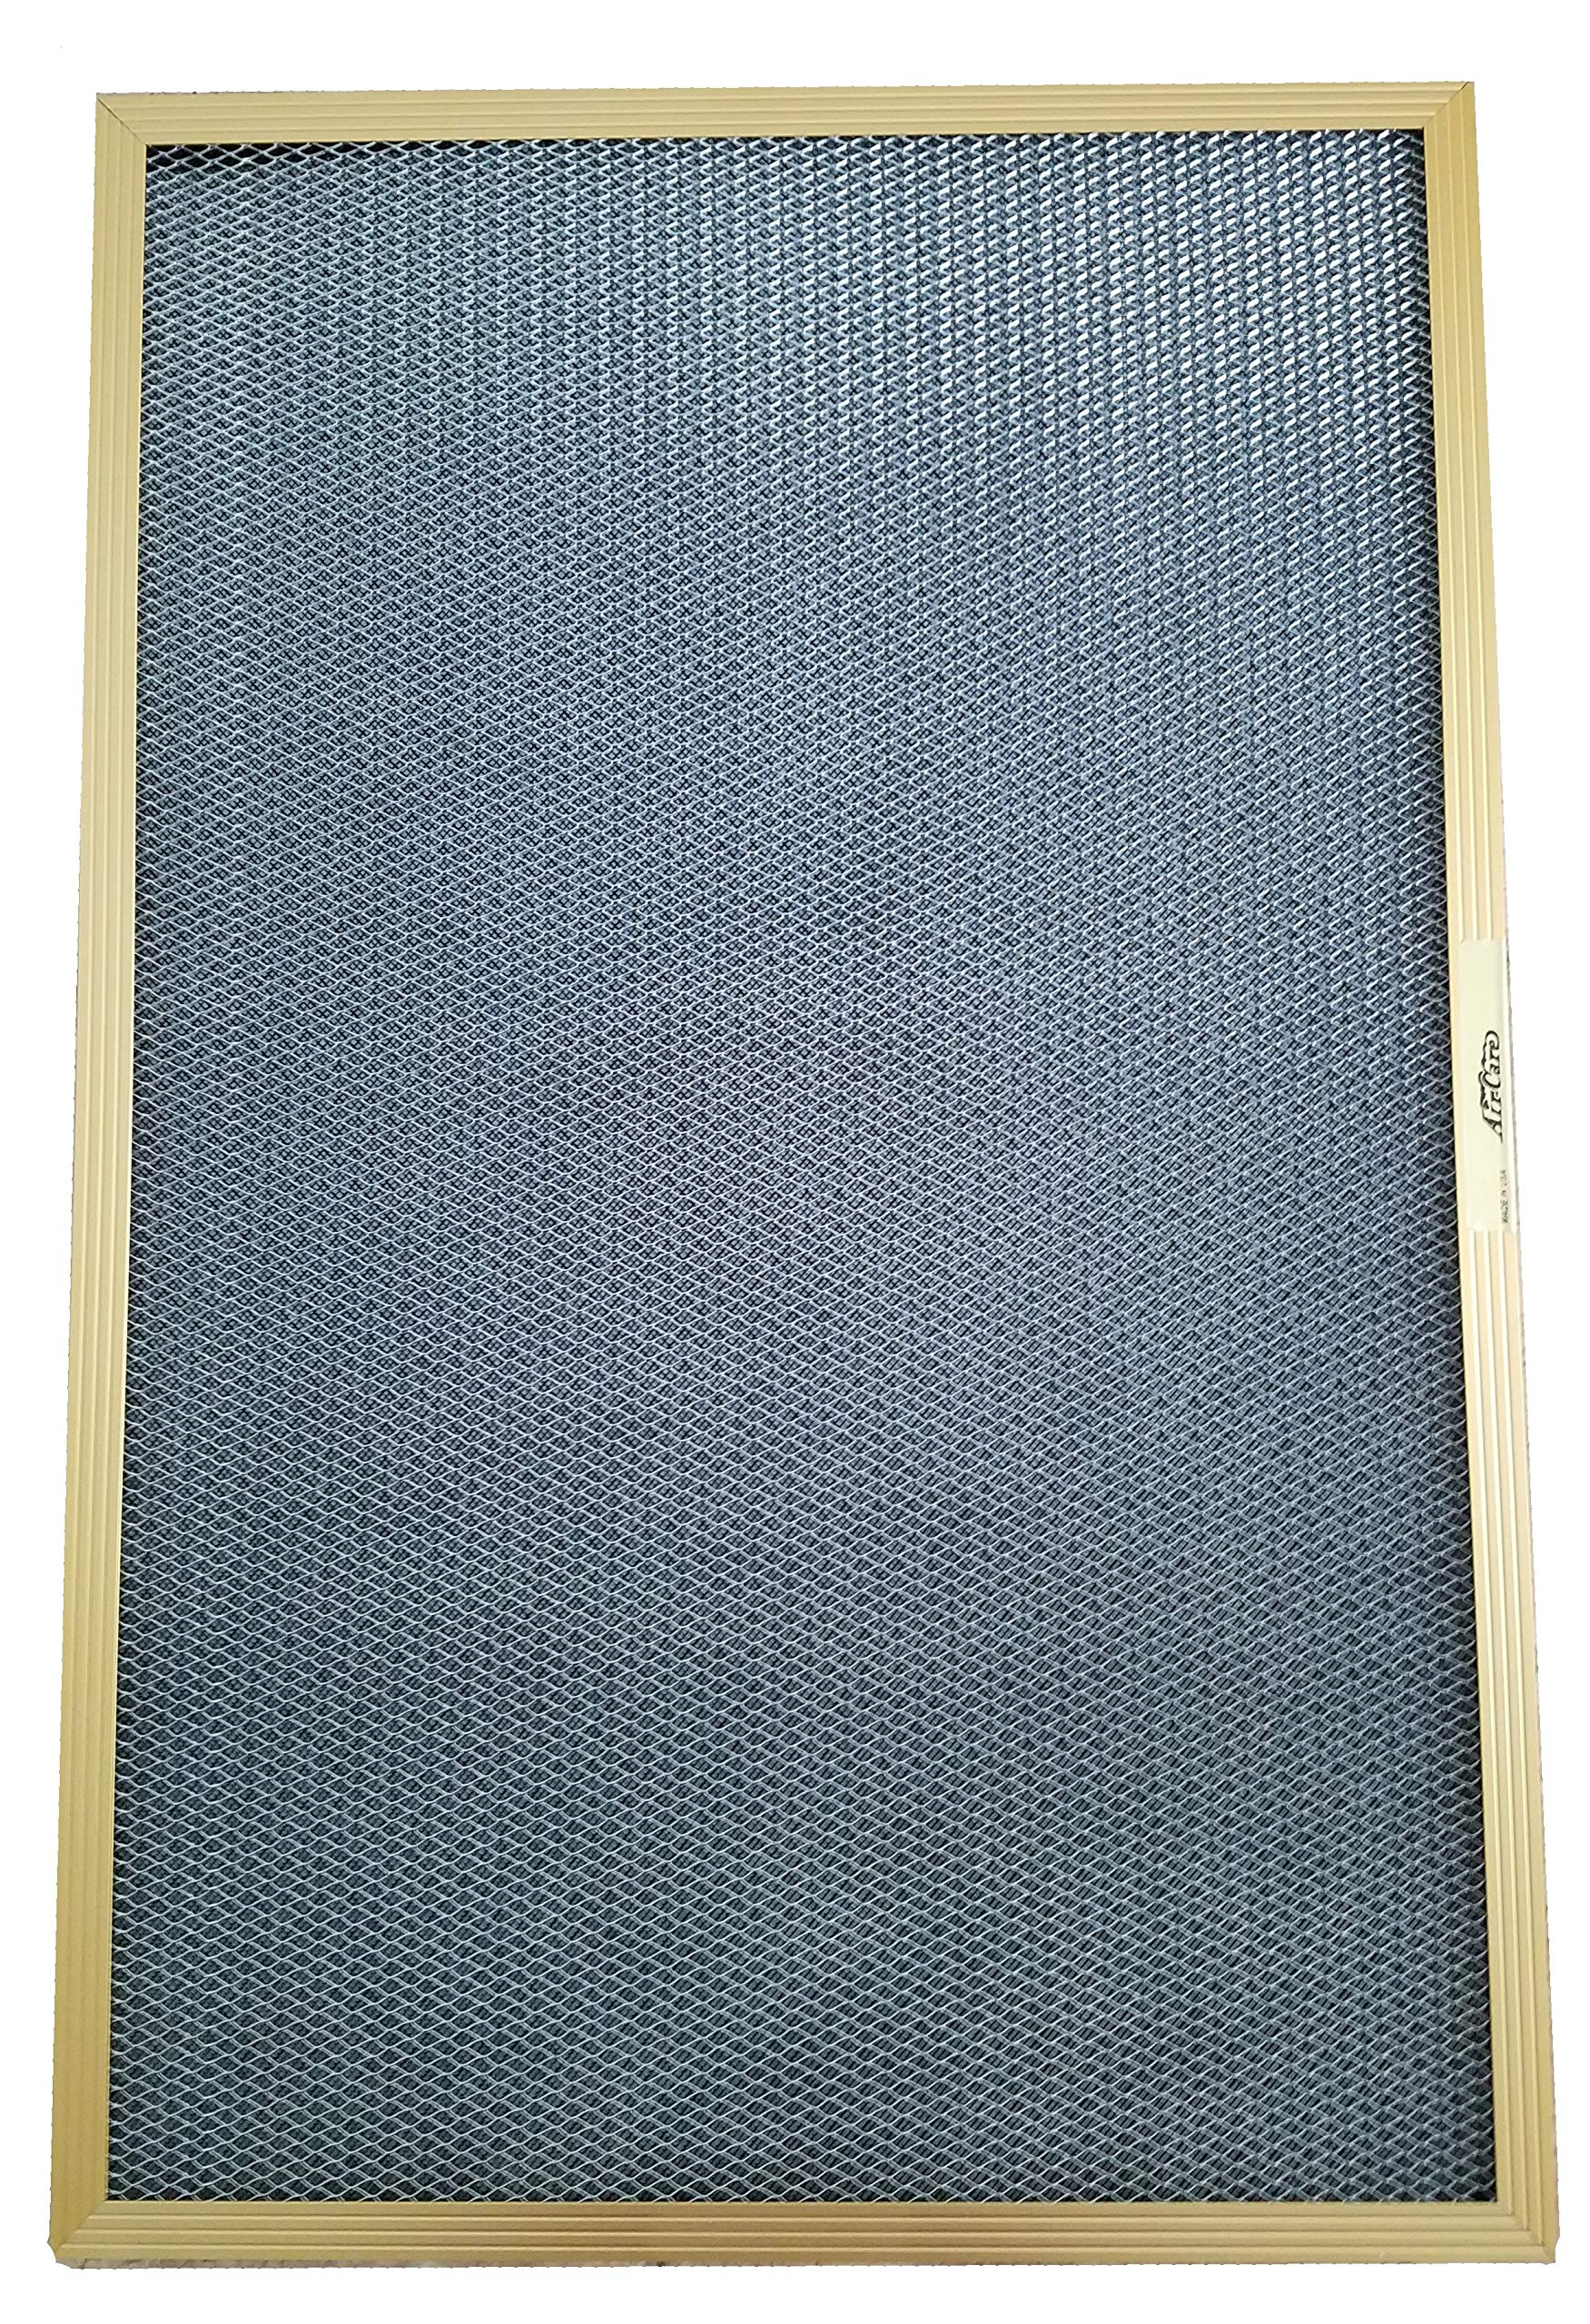 16x30x1 Electrostatic Washable Permanent A/C Furnace Air Filter - Reusable - GOLD FRAME by AirCare